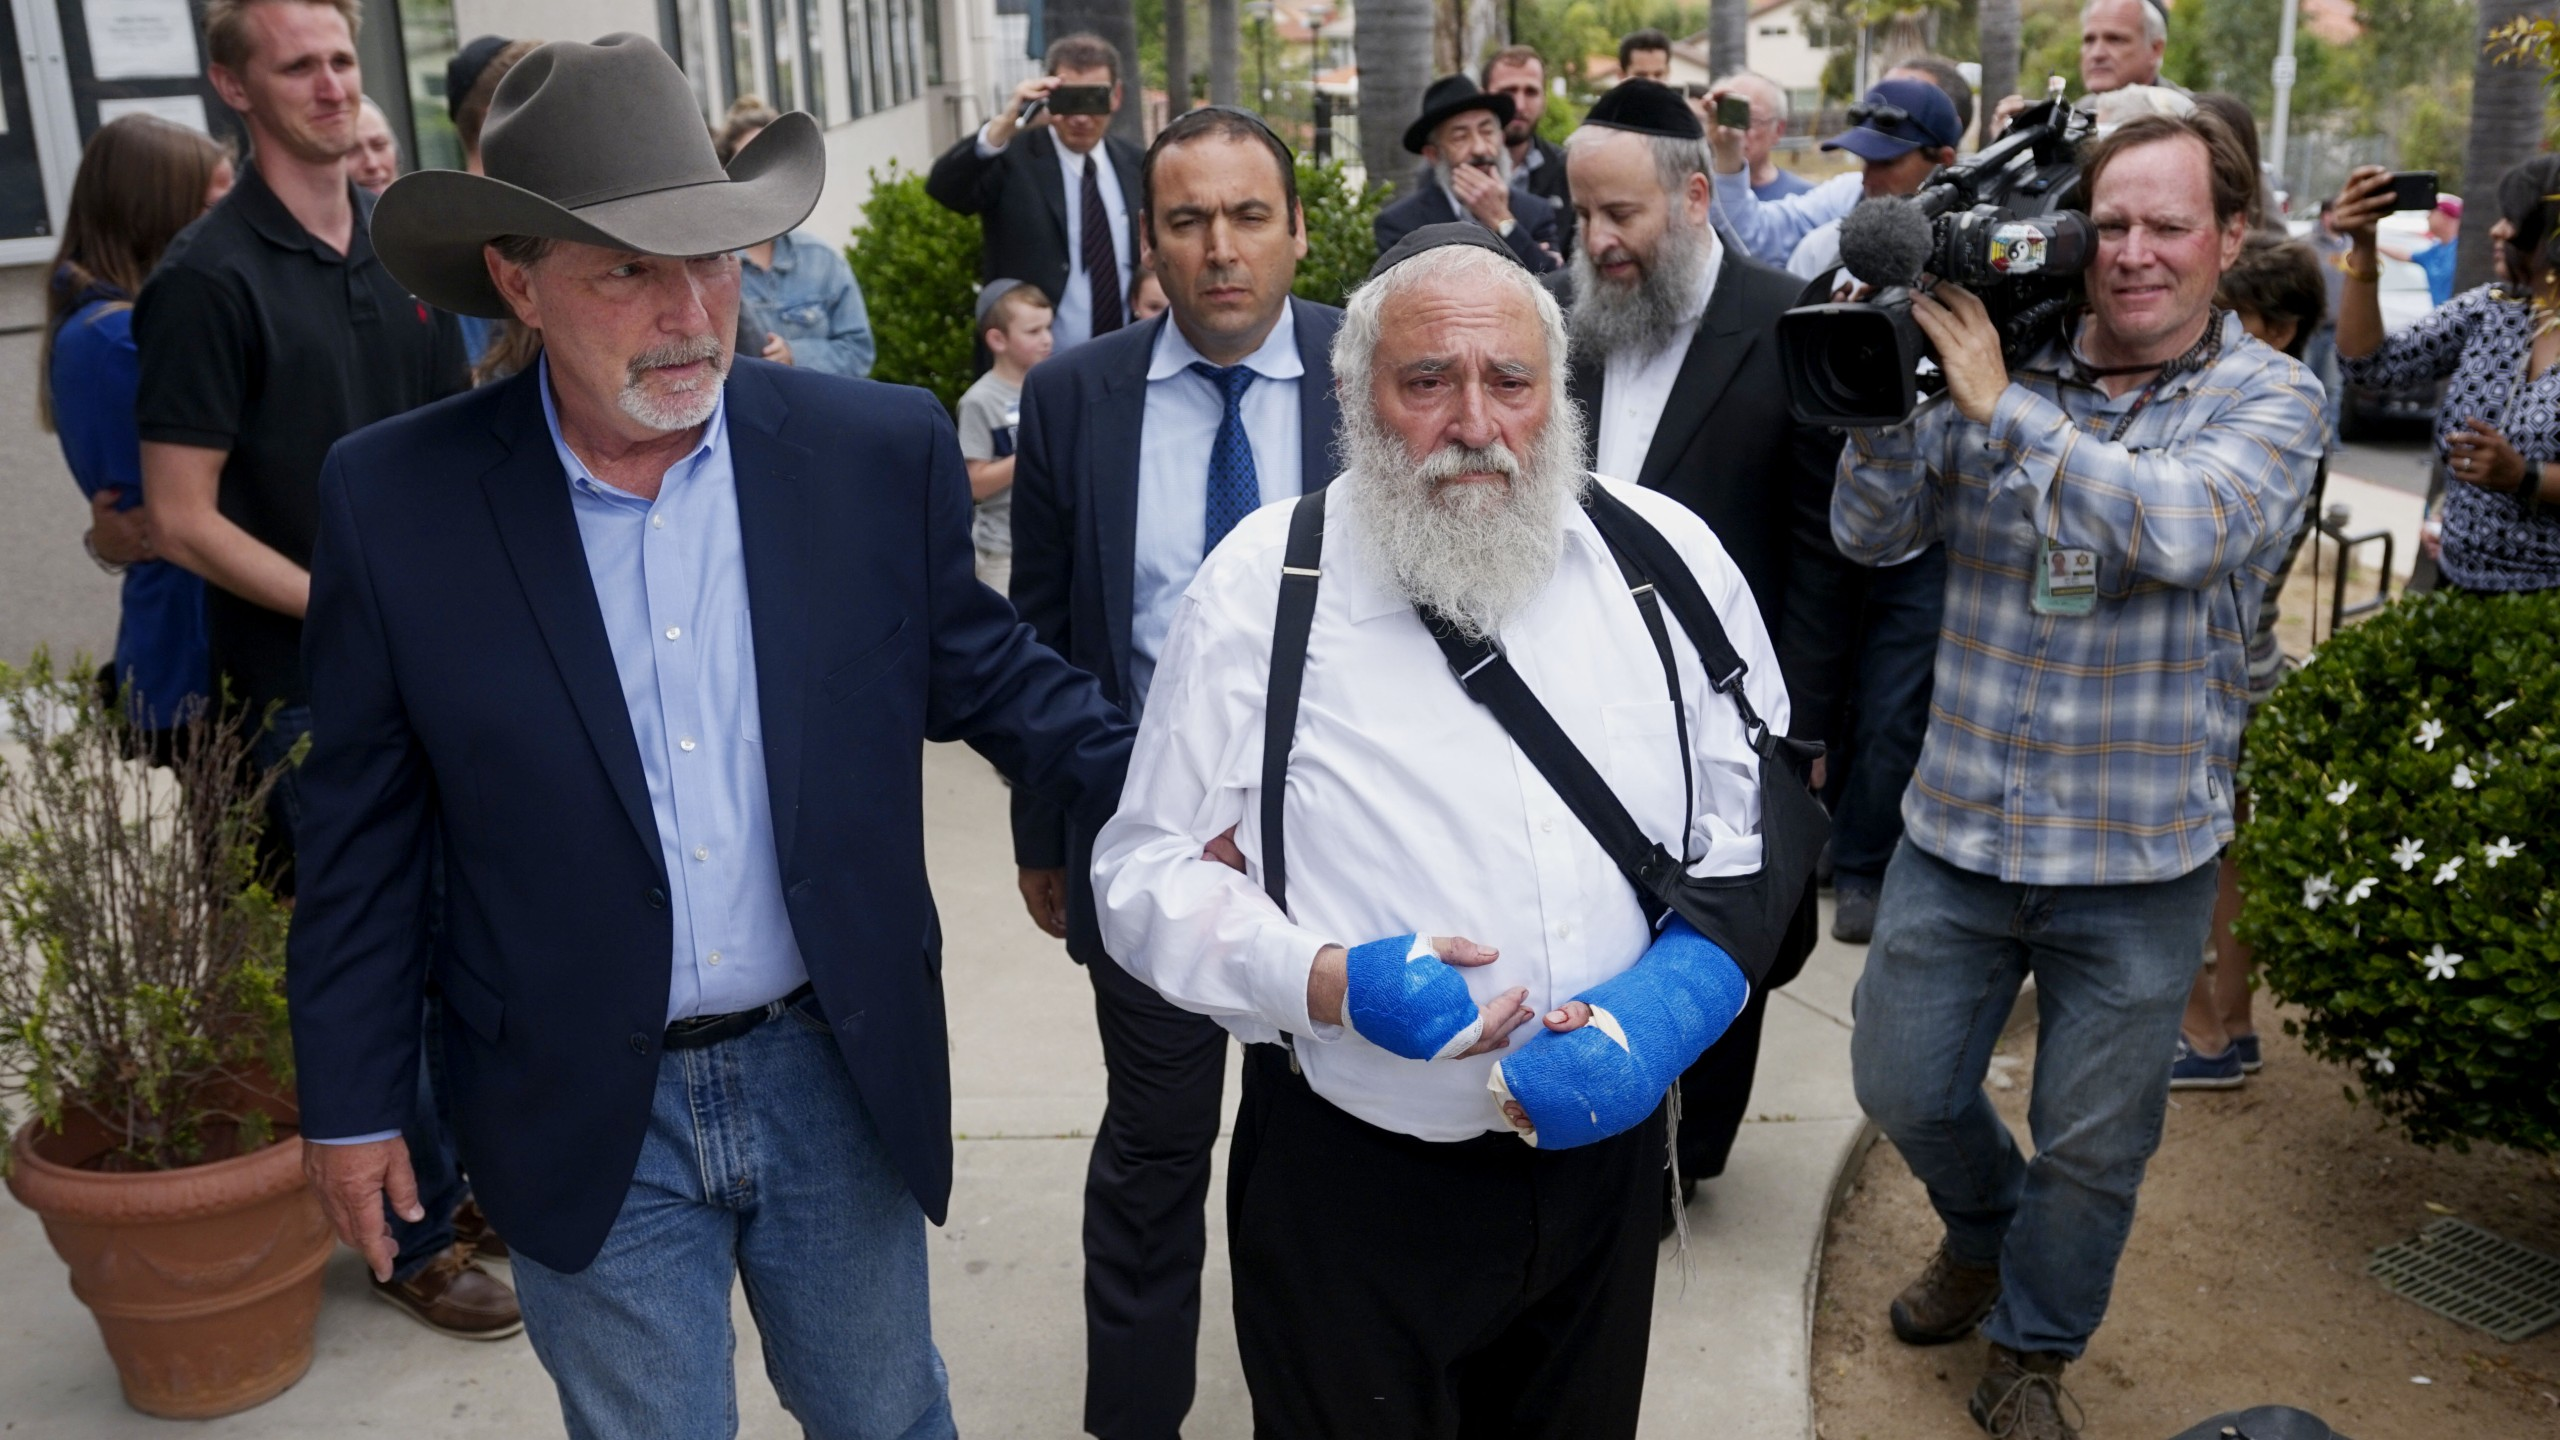 Executive Director Rabbi Ysrael Goldstein, who was shot in the hands, walks towards a press conference with Poway Mayor Steve Vaus outside of the Chabad of Poway Synagogue on April 28, 2019, in Poway, Calif. (Credit: SANDY HUFFAKER/AFP/Getty Images)